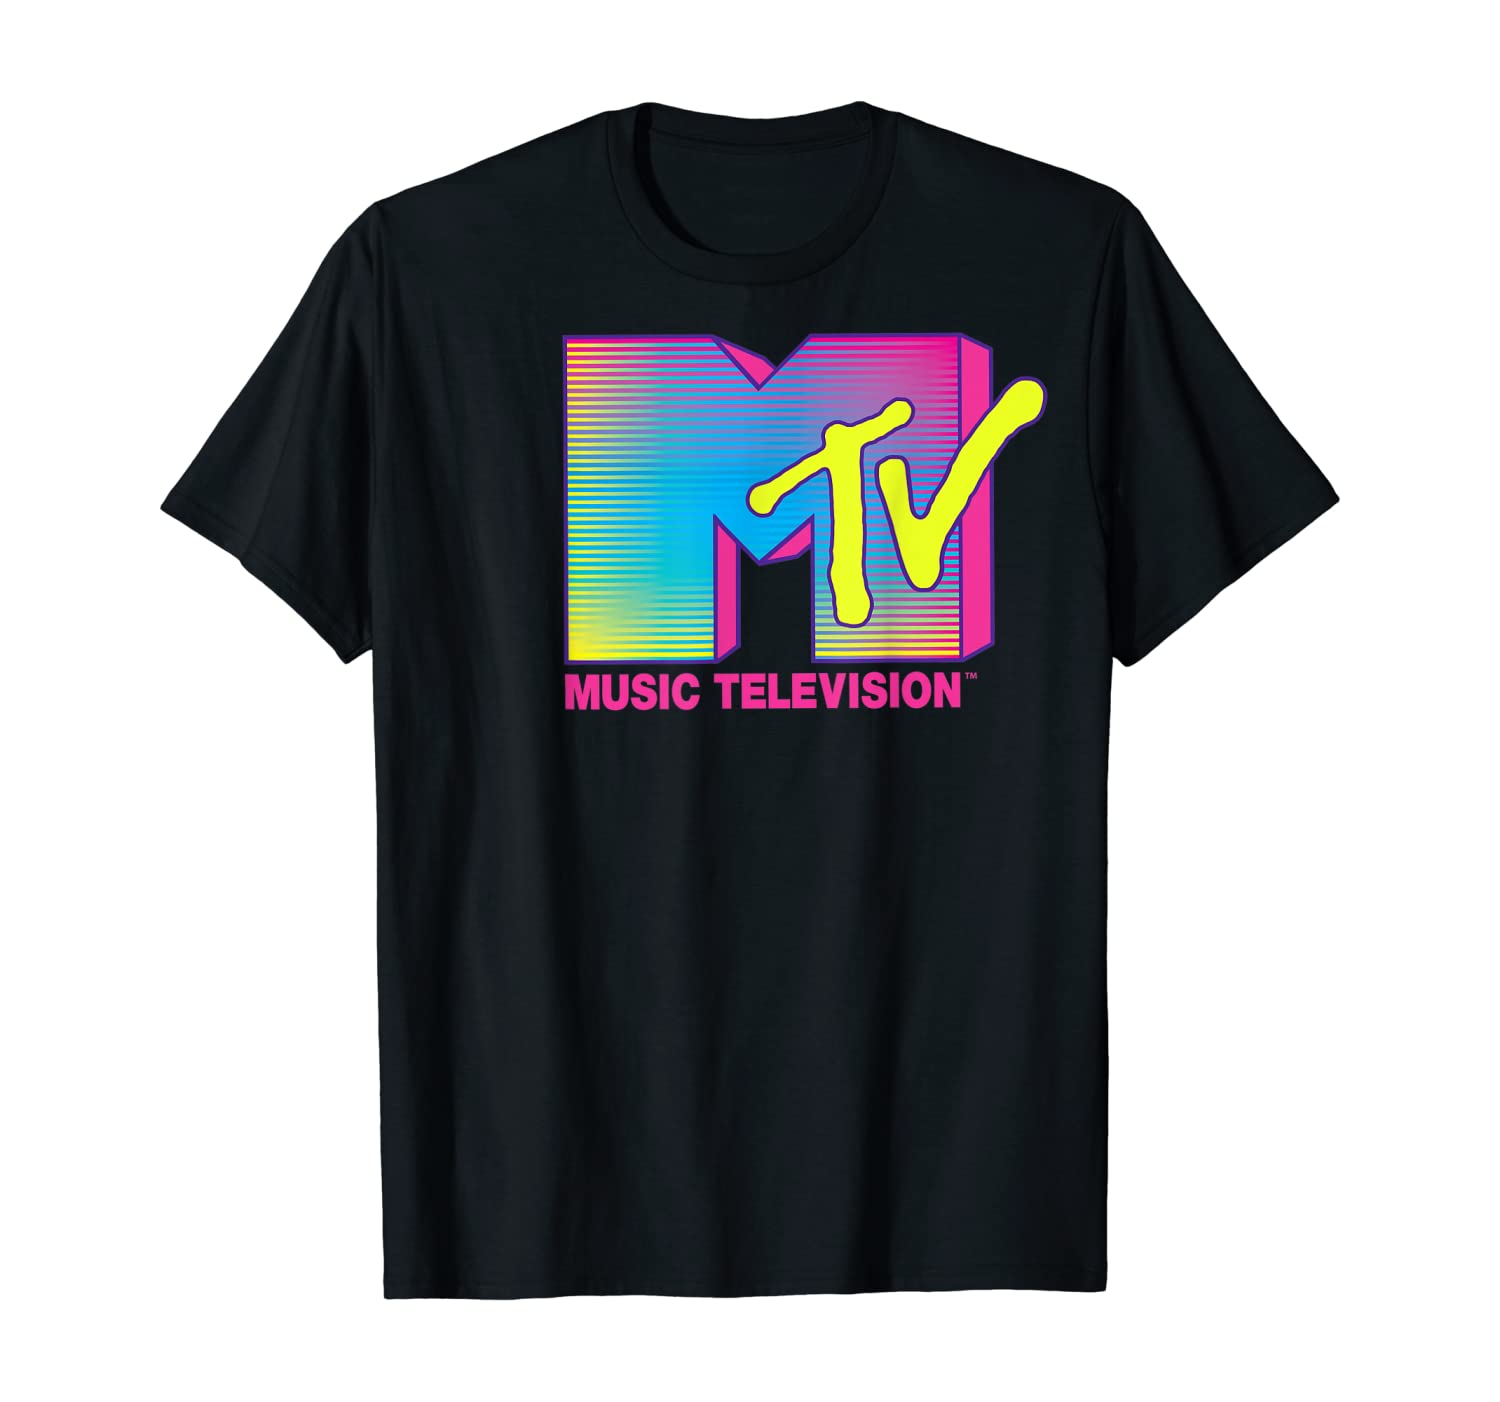 80s Men's Clothing | Shirts, Jeans, Jackets for Guys MTV Logo Fluorescent Colors Graphic T-Shirt $19.99 AT vintagedancer.com